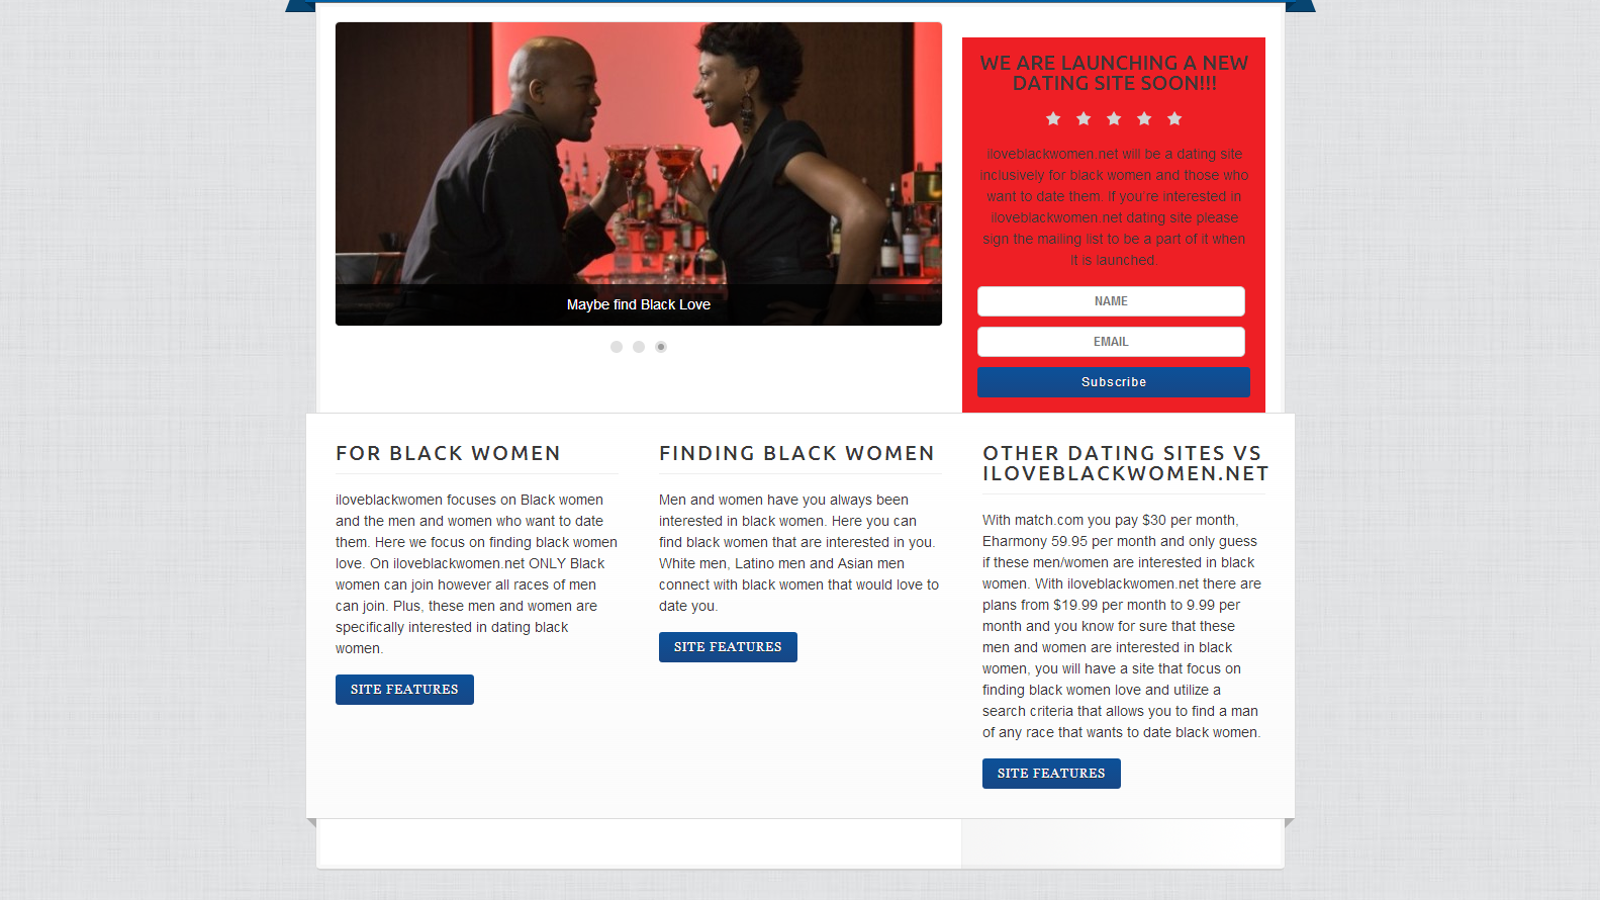 brockton black women dating site Find local lesbian and gay women on pinksofacom, a lesbian dating site for single women seeking other women for serious relationships, friends and support.